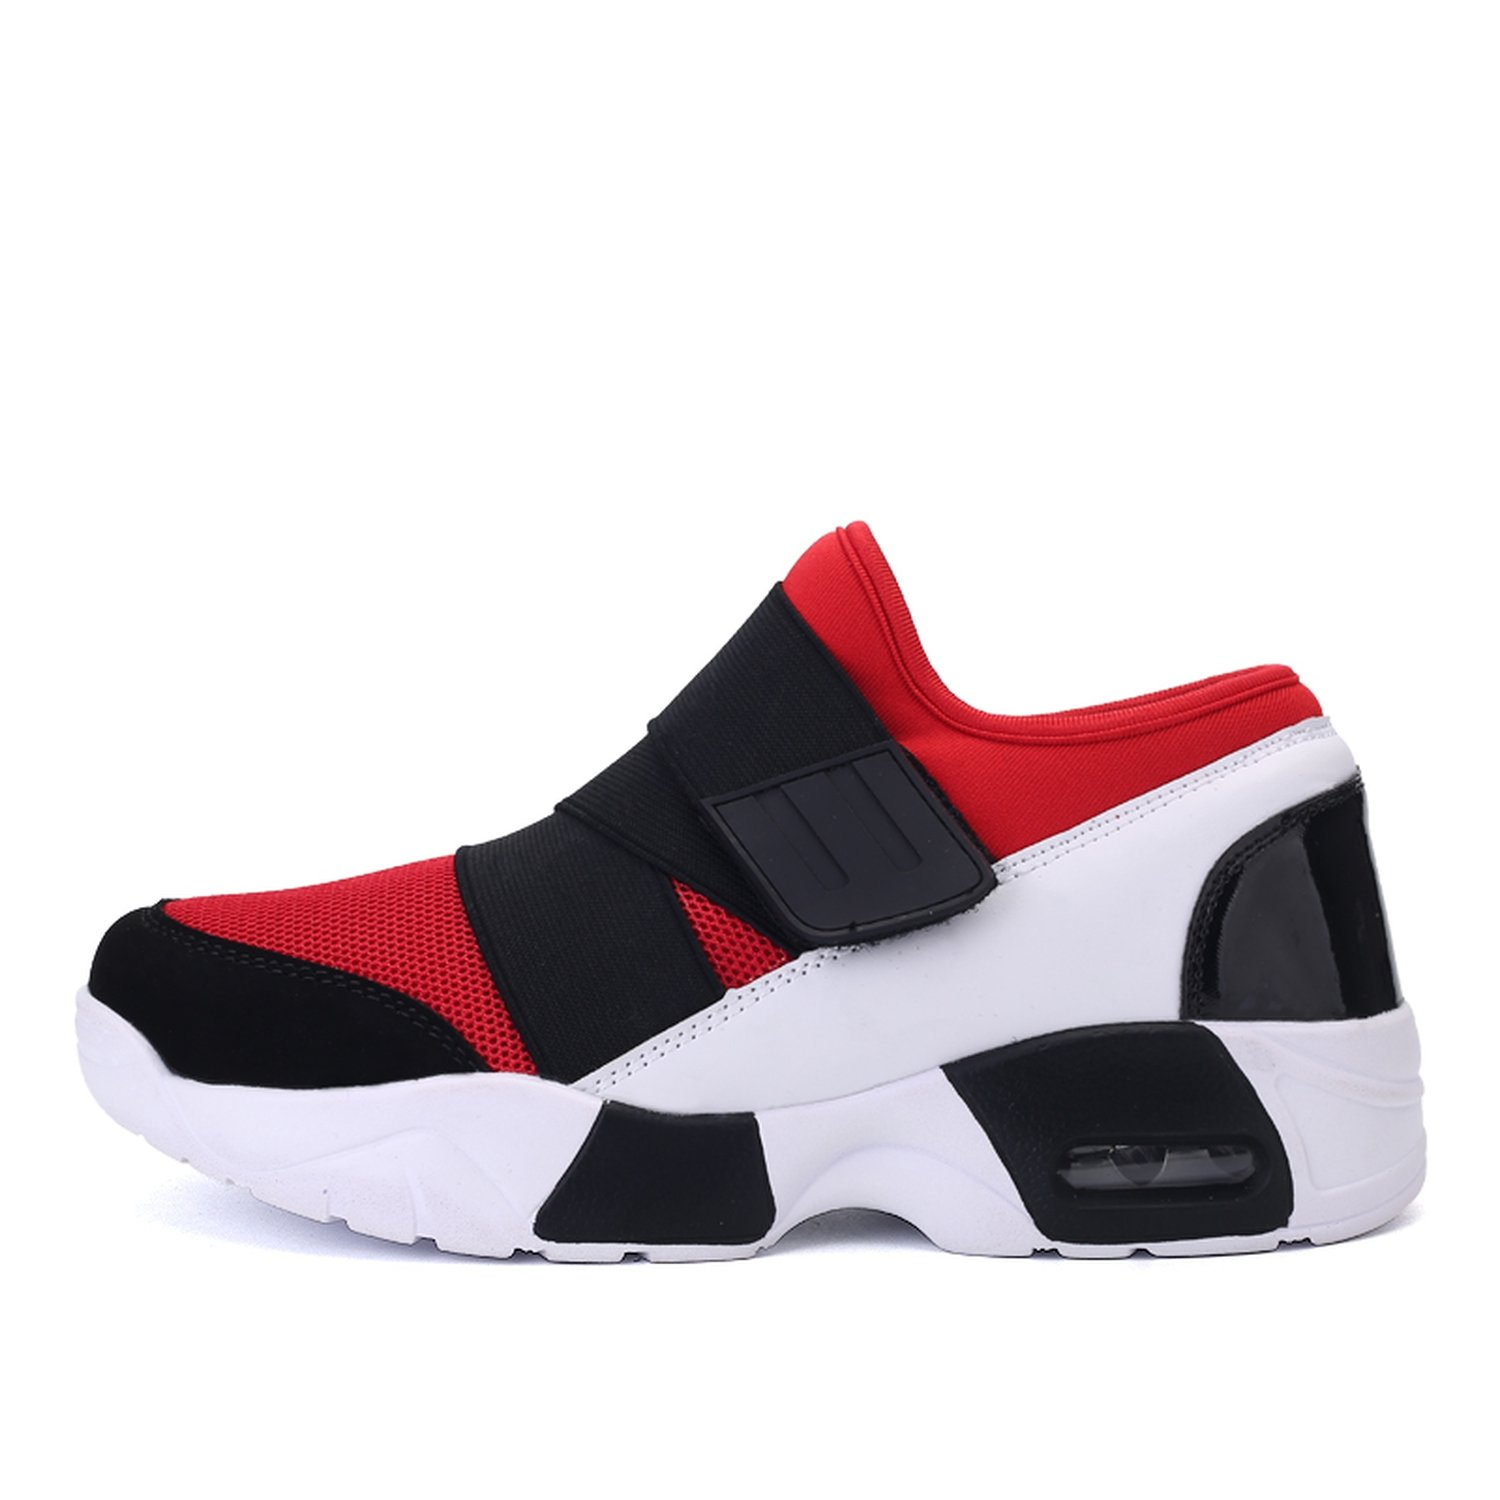 Amazon.com | New Unisex Casual Shoe Air Breathable Casual Fashion Krasovki boty calcados obuv Tenisky Flats Height Increasing Shoes Men | Fashion Sneakers